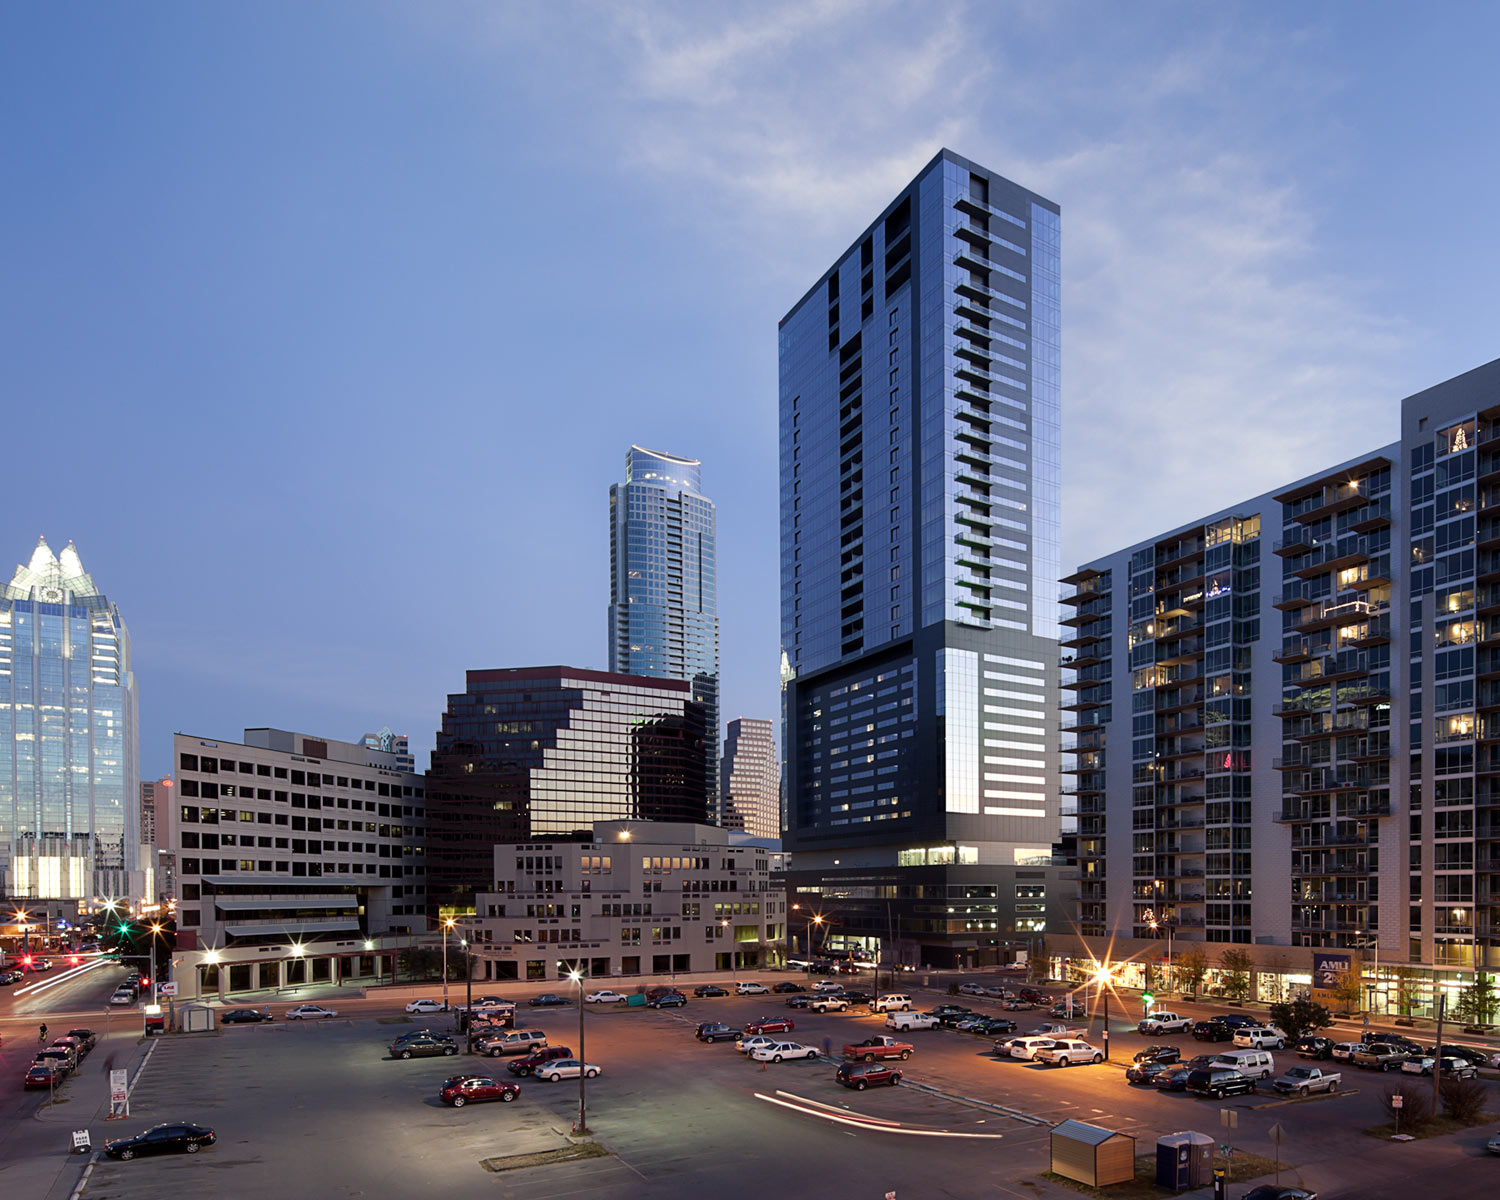 Facades am is coming to austin texas on july 18 - Interior design jobs in austin tx ...